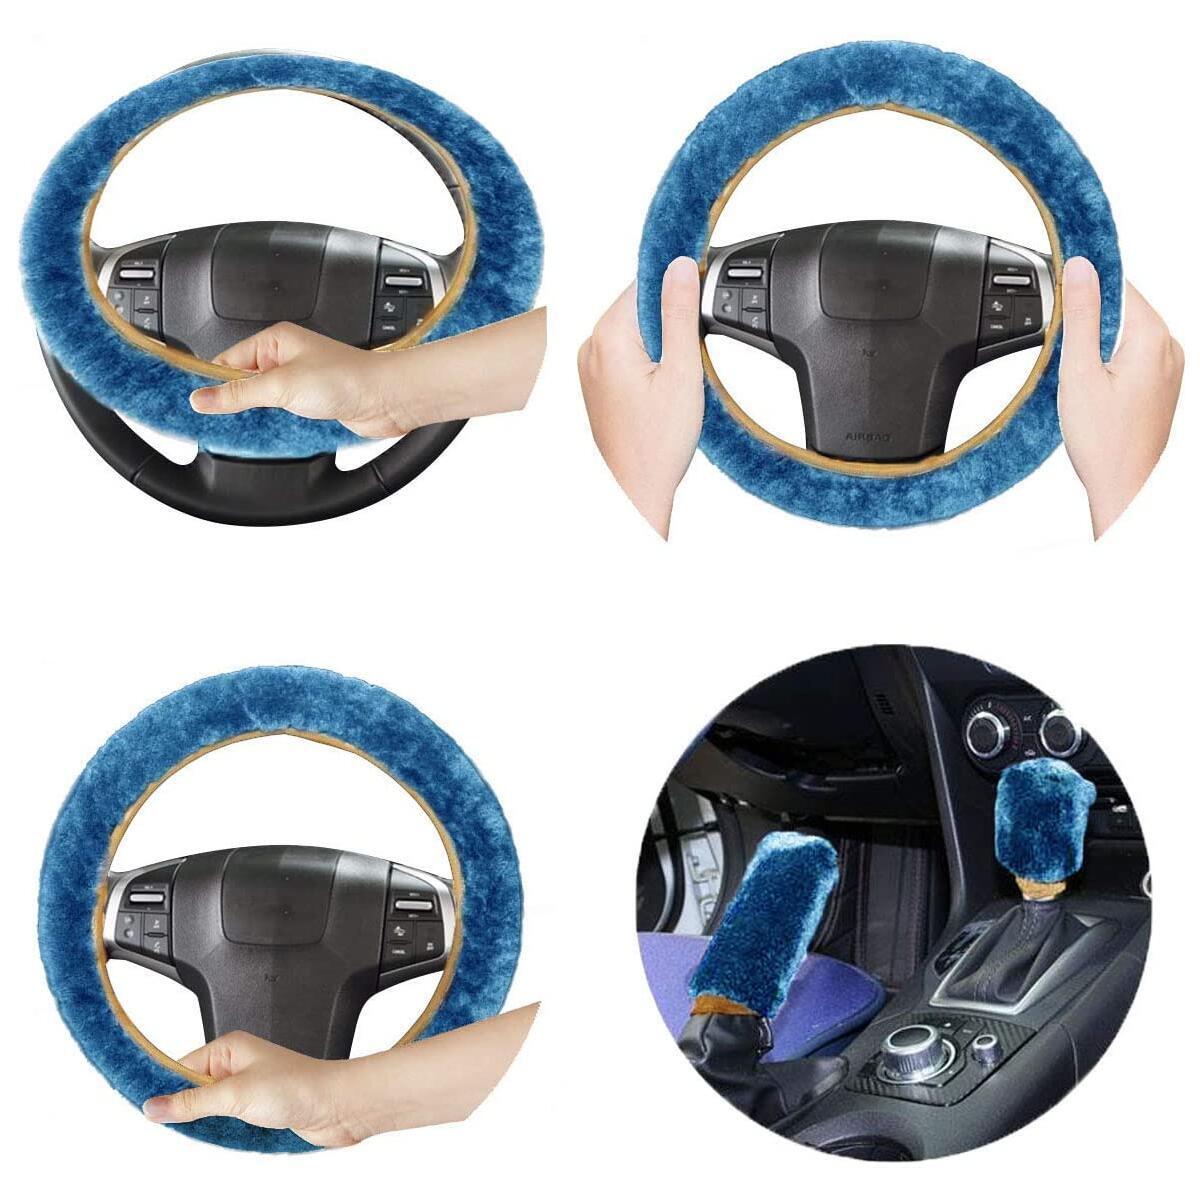 VaygWay Custom Autos Plush Faux Sheepskin Stretch- On Vehicle Steering Wheel Cover Blue Thermal Car Wheel Protector